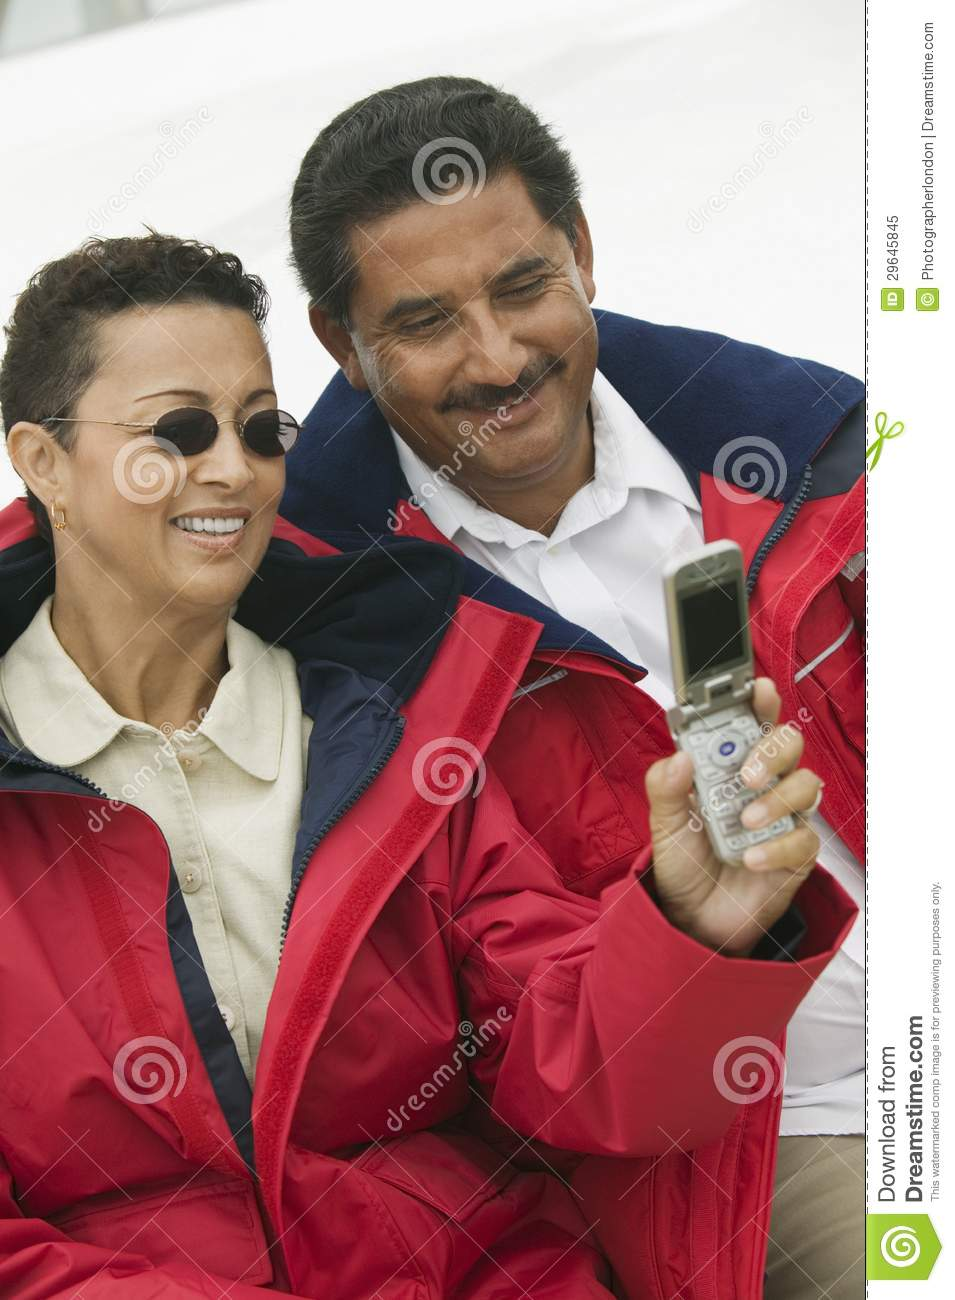 ... stock images of ` Couple Taking A Self Portrait Through Cell Phone